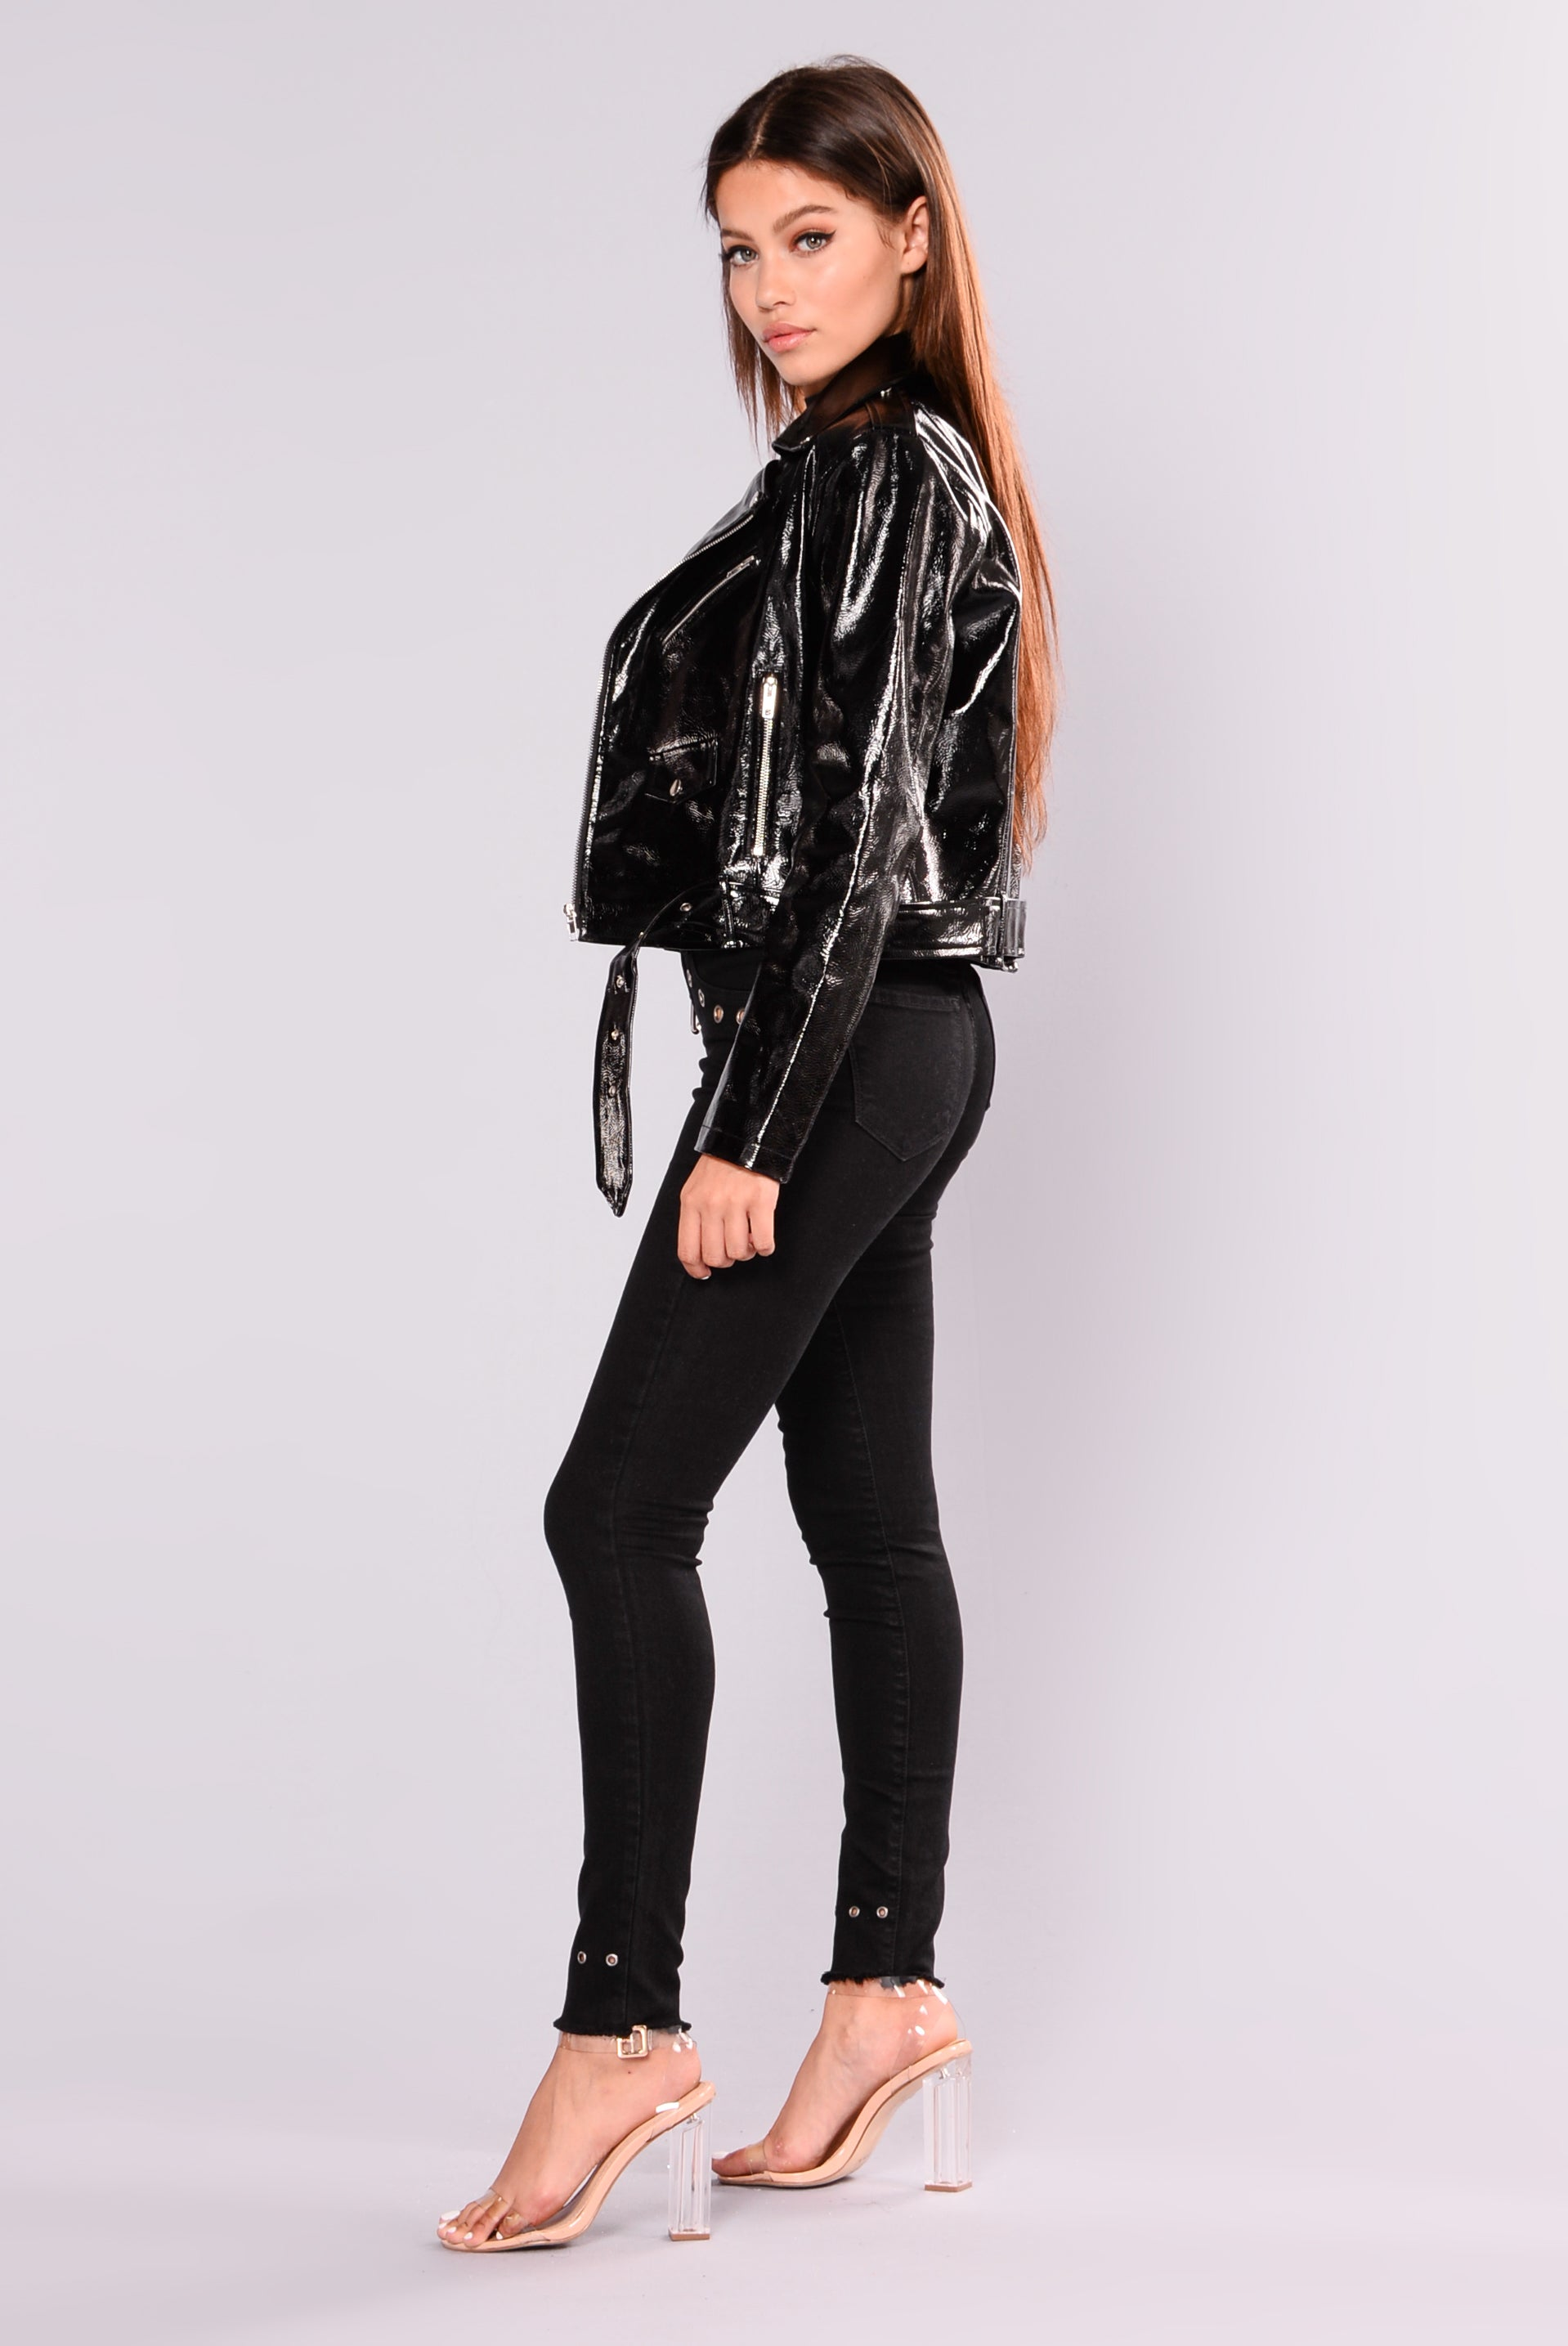 Patent leather jackets